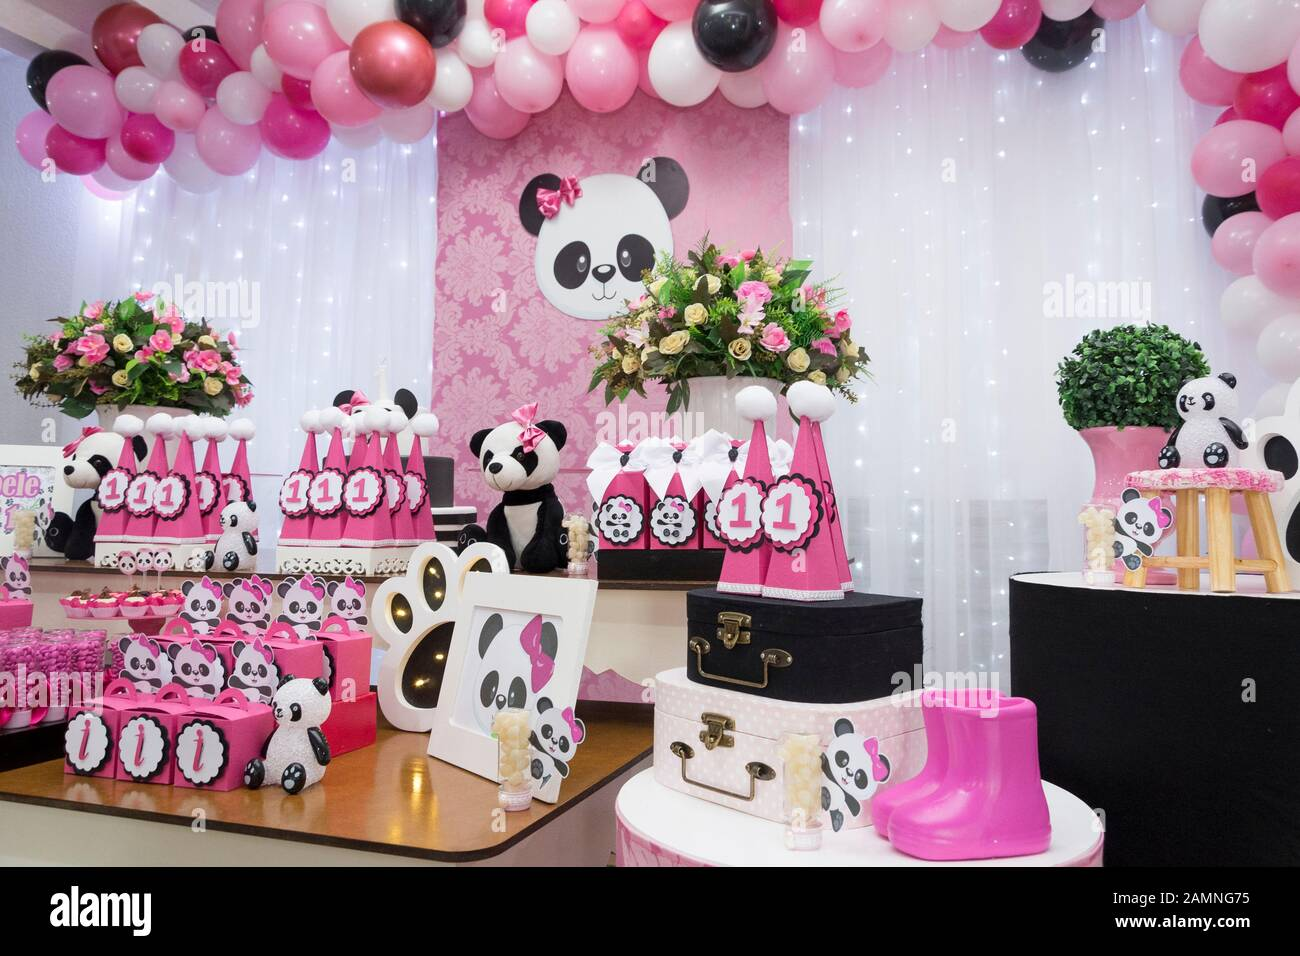 Admirable Table Of Sweets And Birthday Cake Girl Party Decorated With Panda Funny Birthday Cards Online Elaedamsfinfo